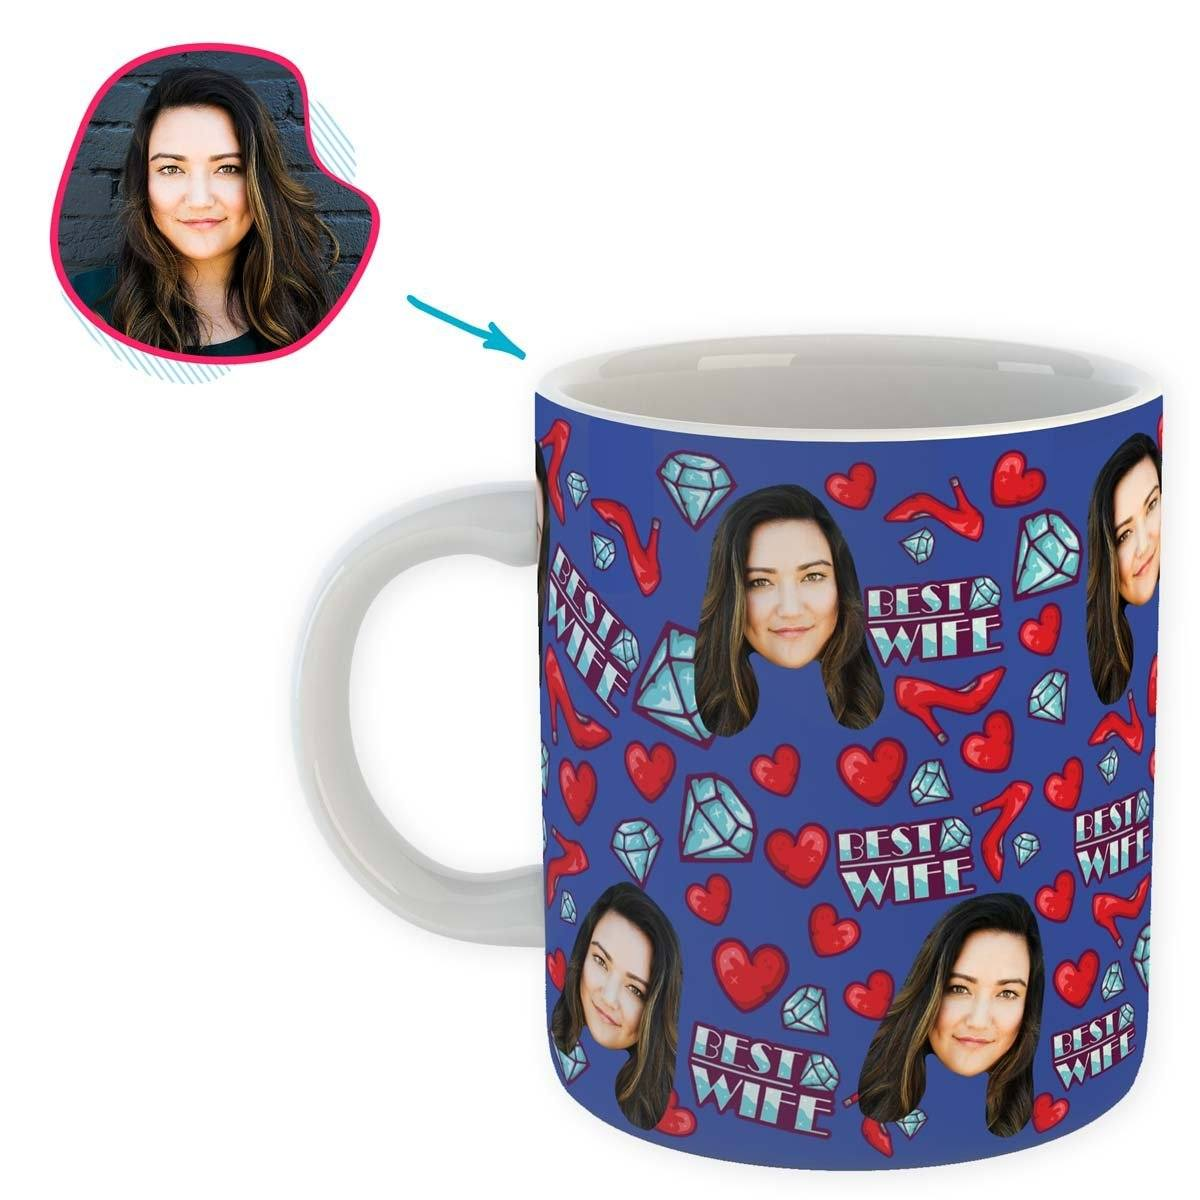 Darkblue Wife personalized mug with photo of face printed on it